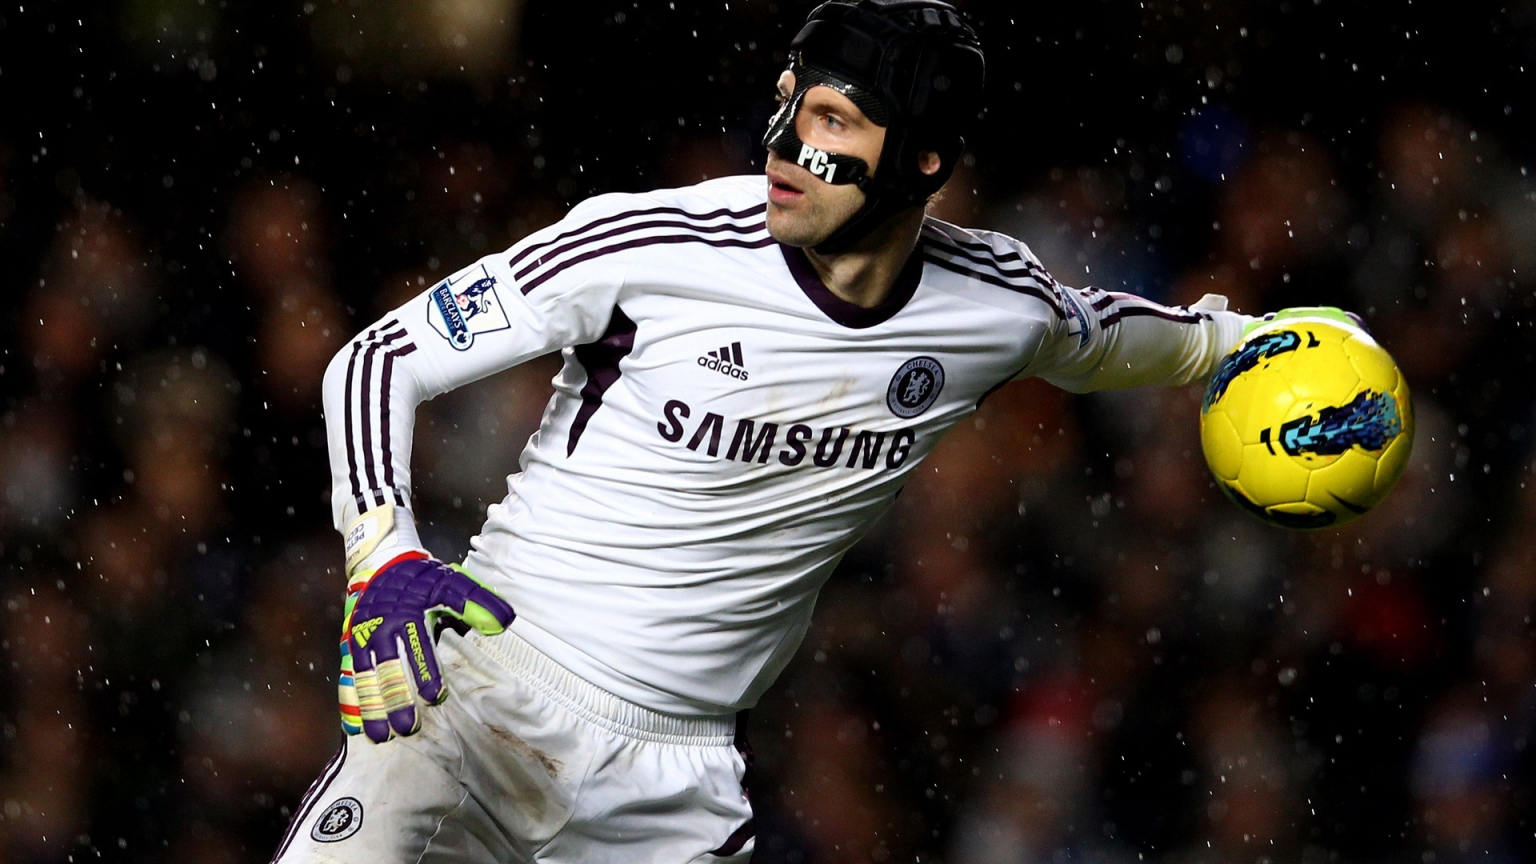 Petr Cech for 1536 x 864 HDTV resolution